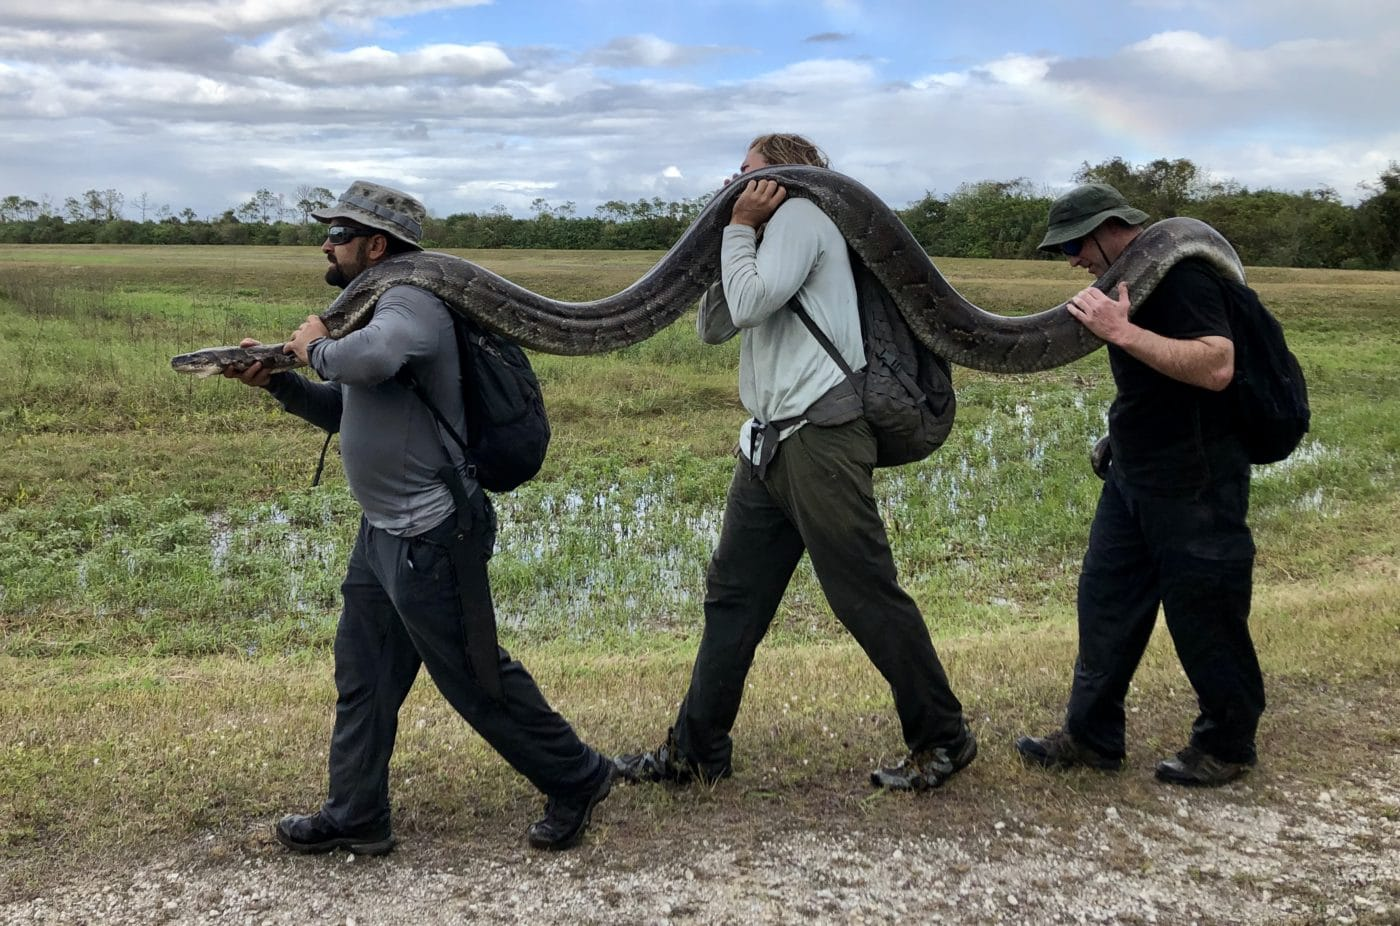 Capture Conservancy Of Southwest Florida Wildlife Biologists Ian Bartoszek Ian Easterling And Volunteer With A 110 Pound Female Burmese Python Located With A Scout Snake On 26DEC19